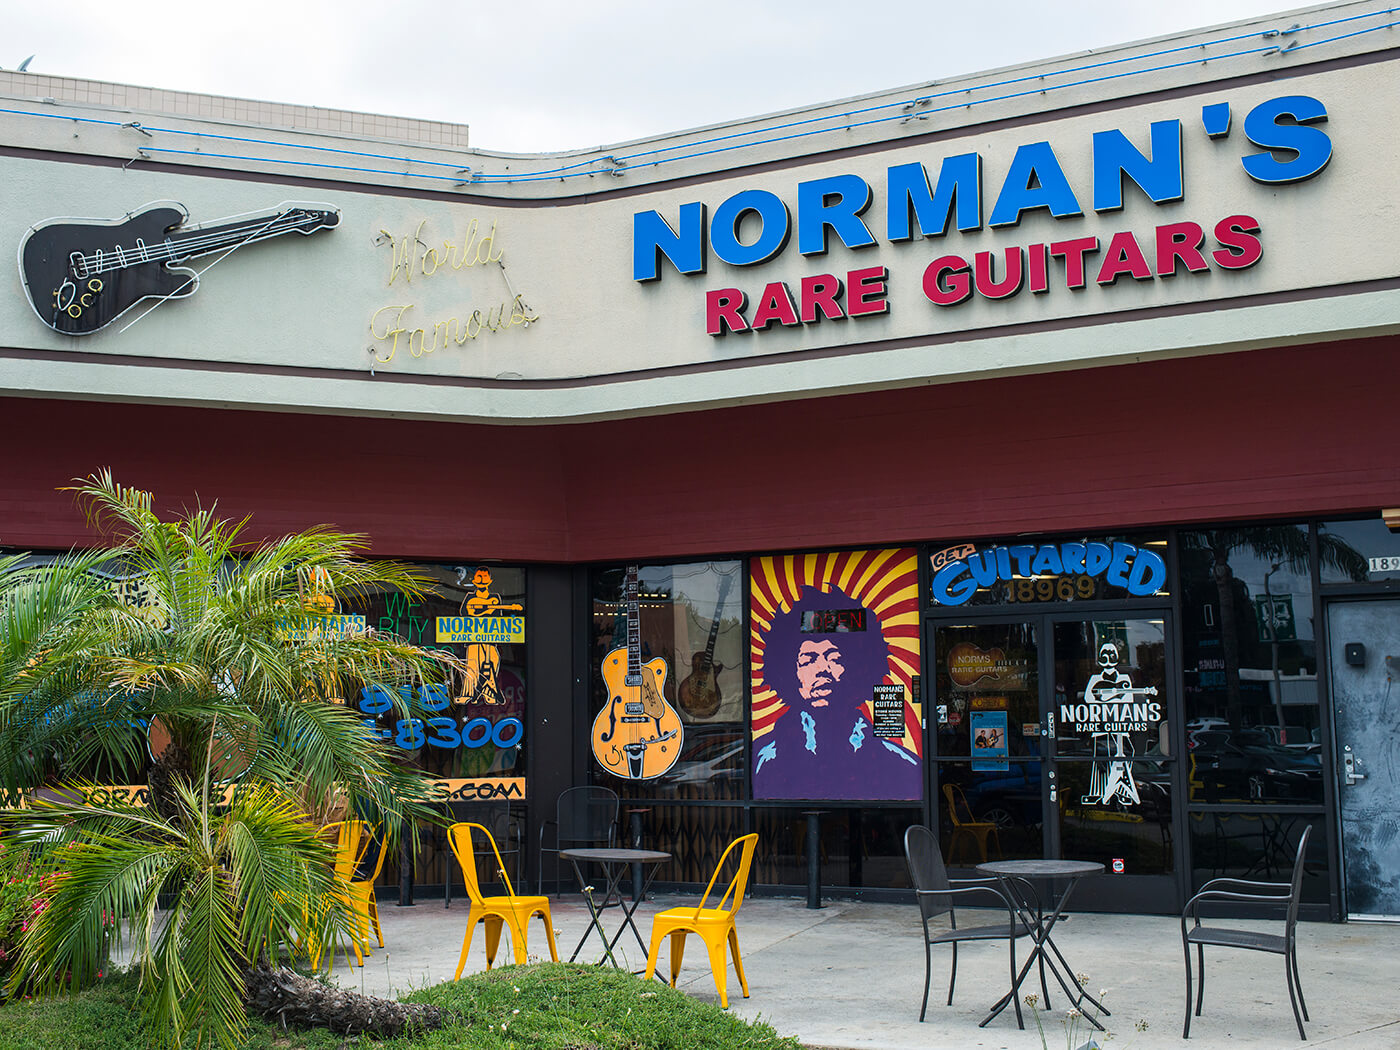 Norman's Rare Guitars